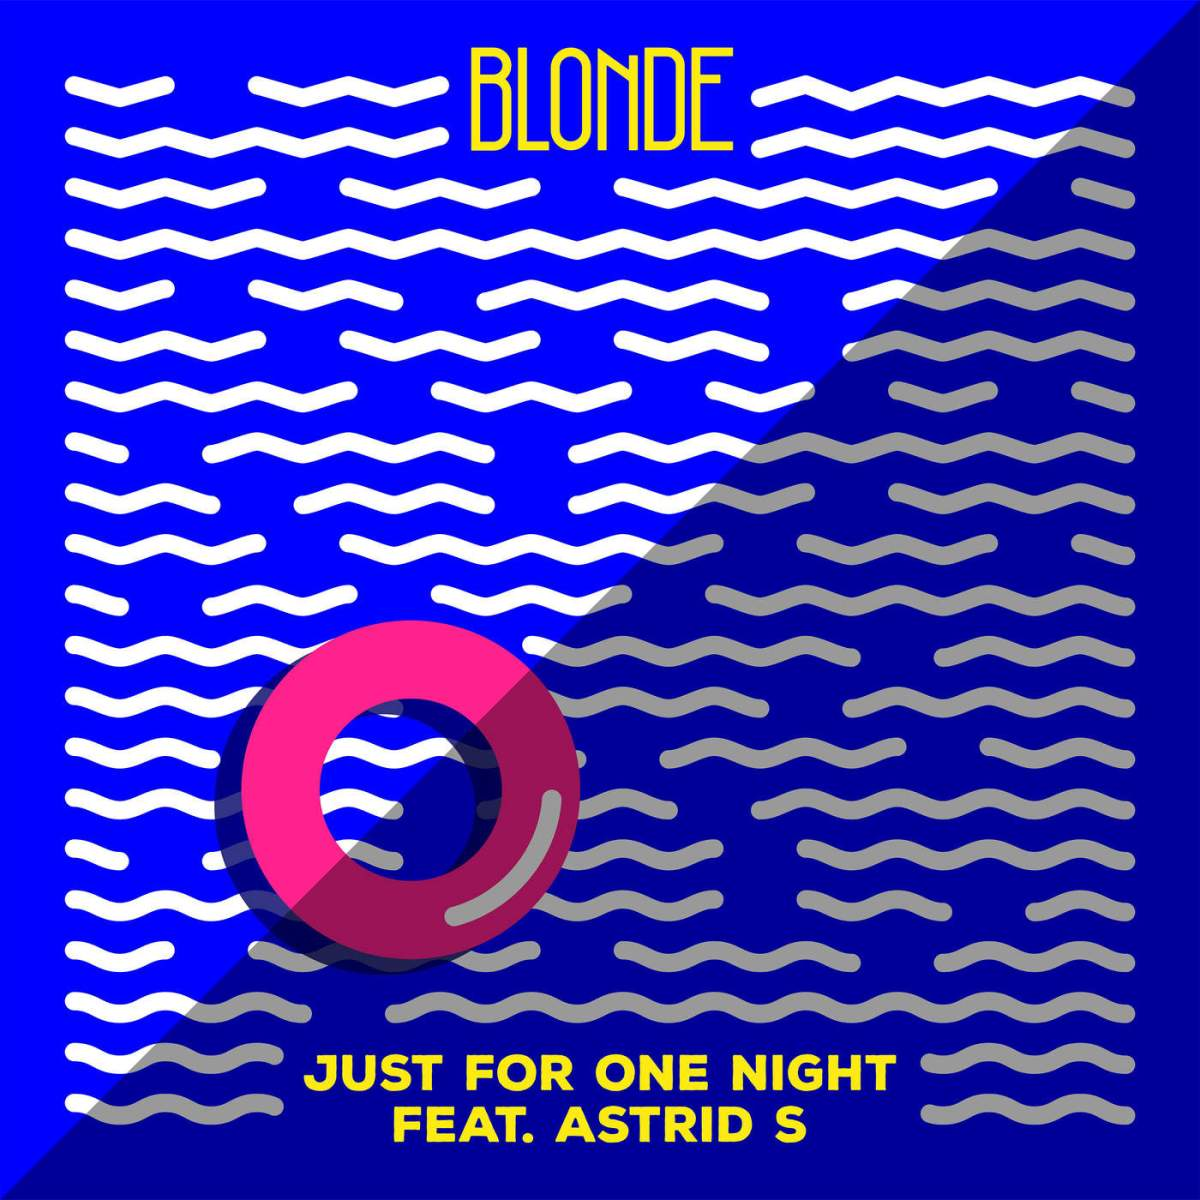 Blonde just for one